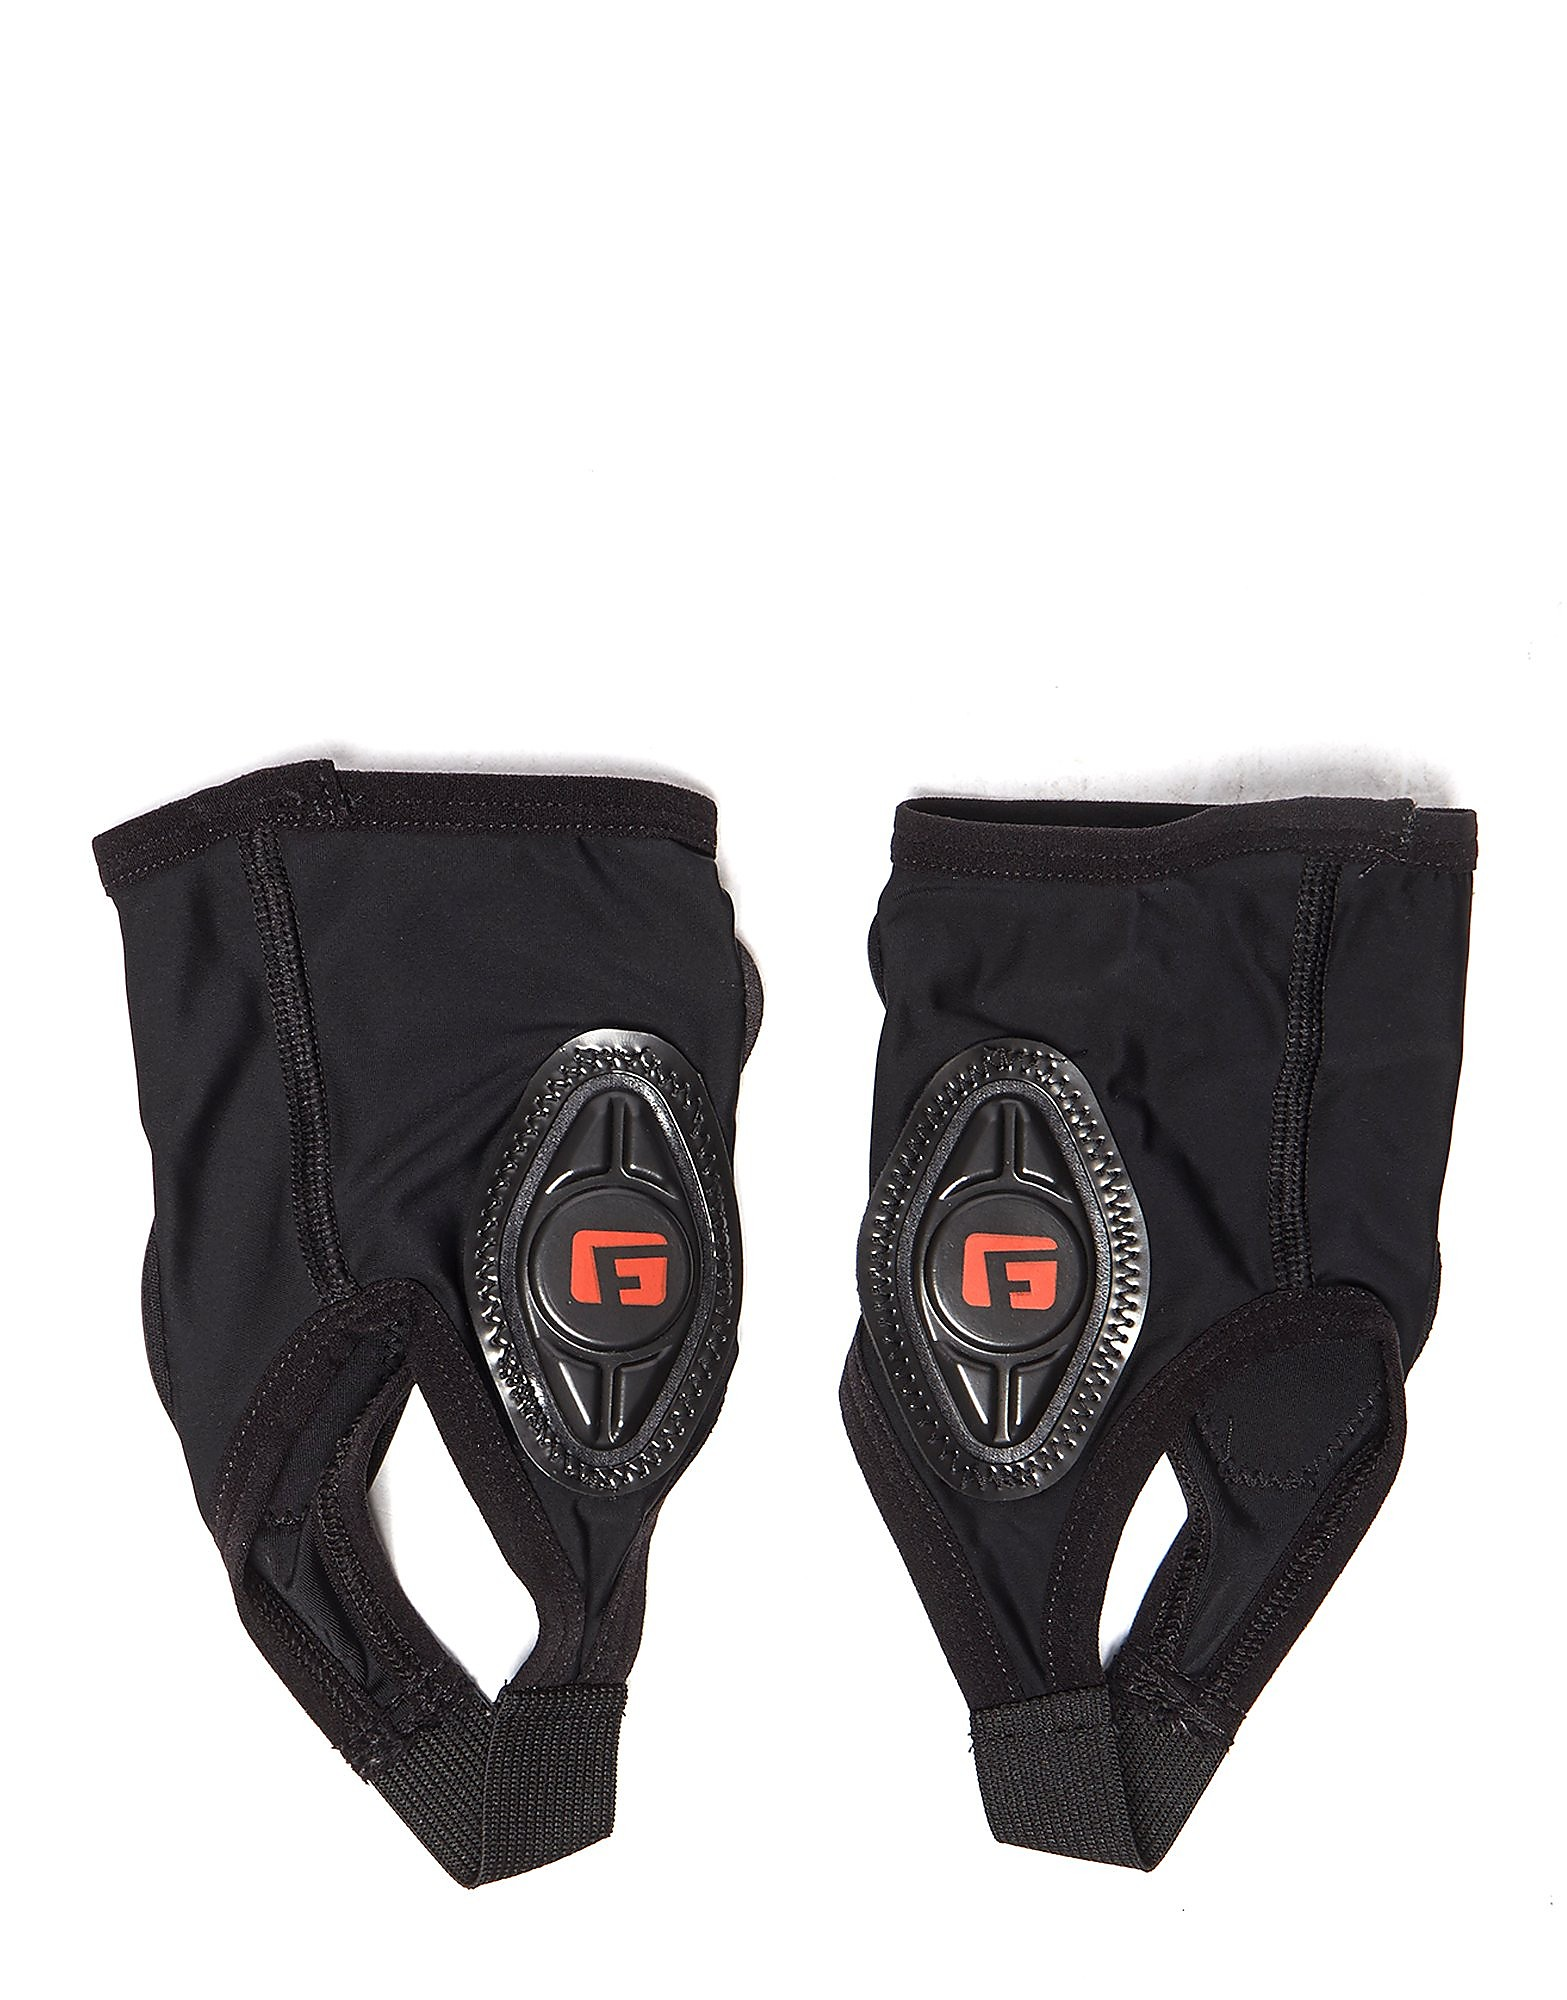 G-Form Pro-X Ankle Guards